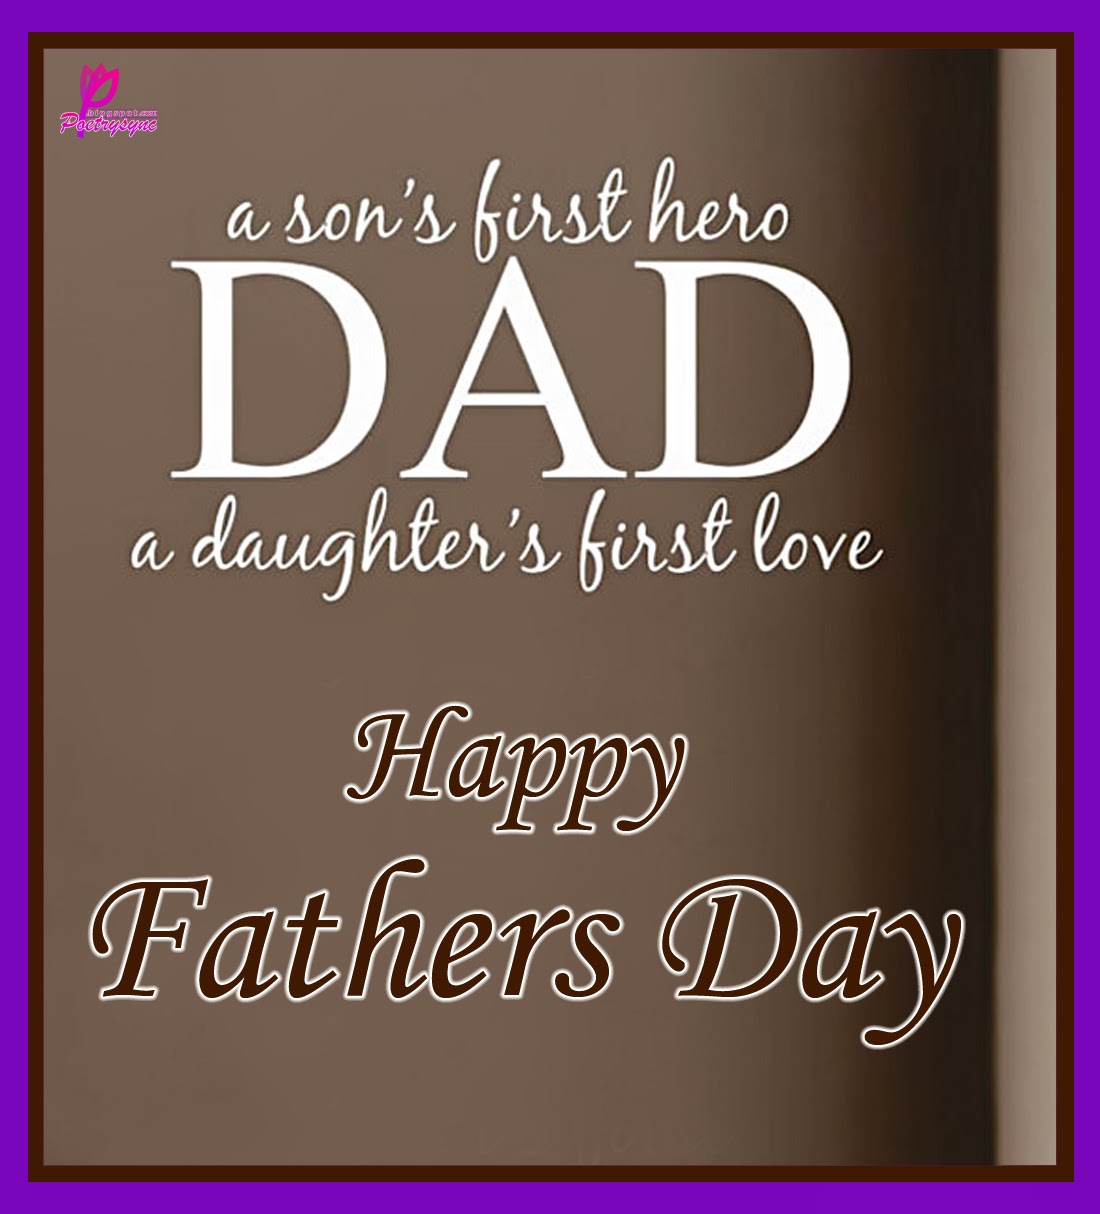 Quotes For A Daughter: Fathers Day 2015 Poems And Quotes